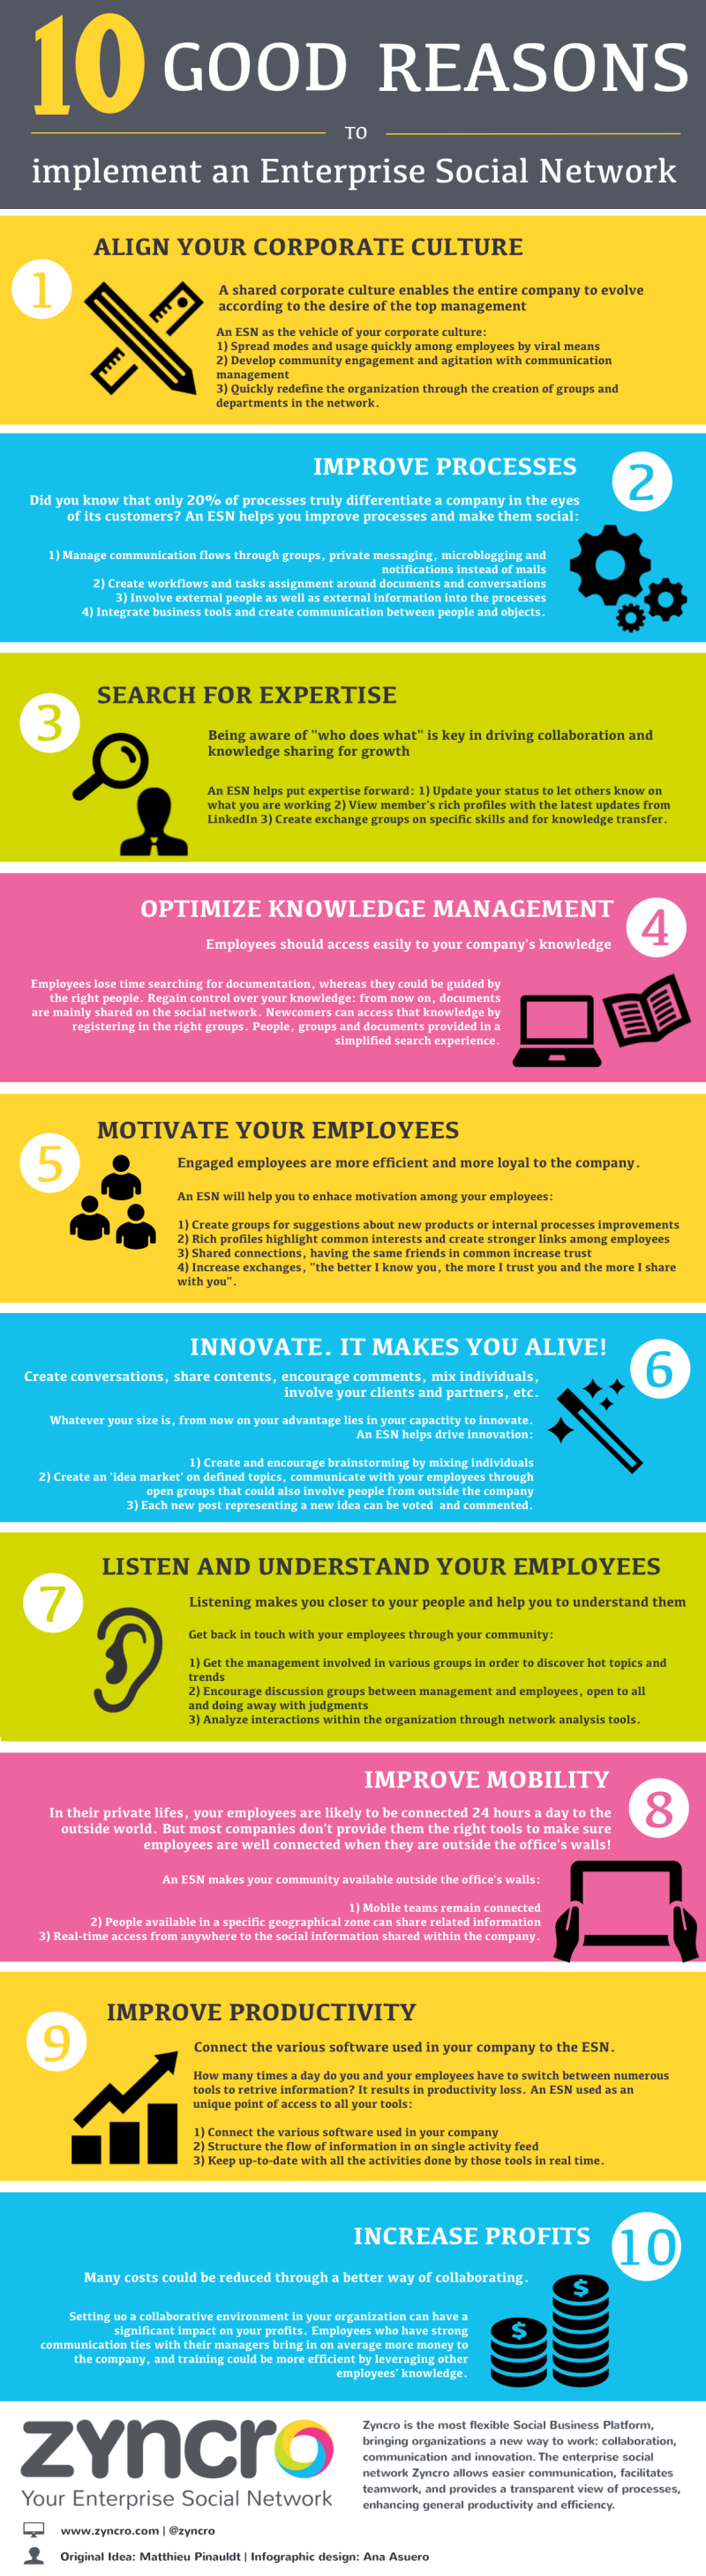 Infographic-10-reasons-to-implement-an-Enterprise-Social-Network